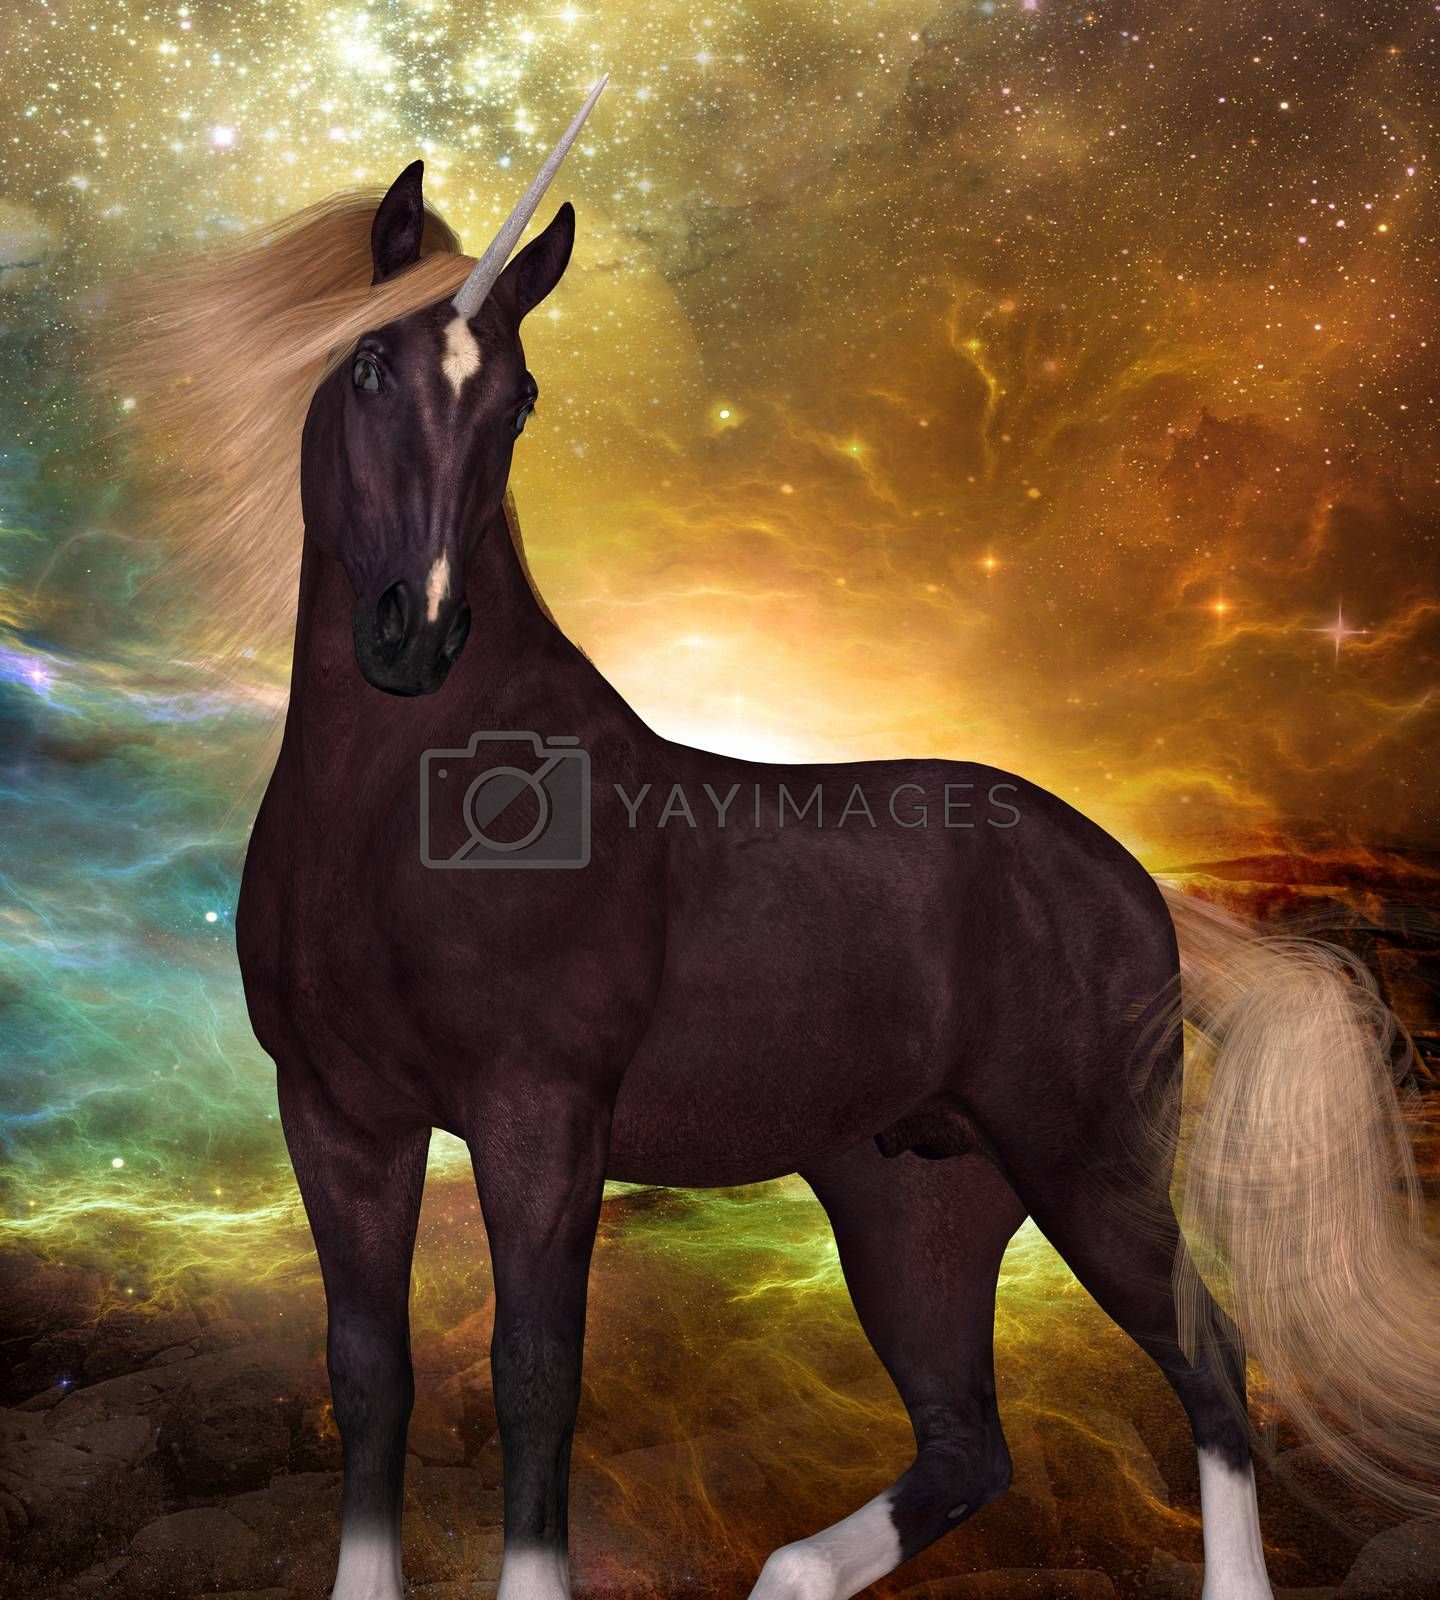 A Unicorn is a creature of myth and fantasy and has cloven hooves, forehead horn and a beard.